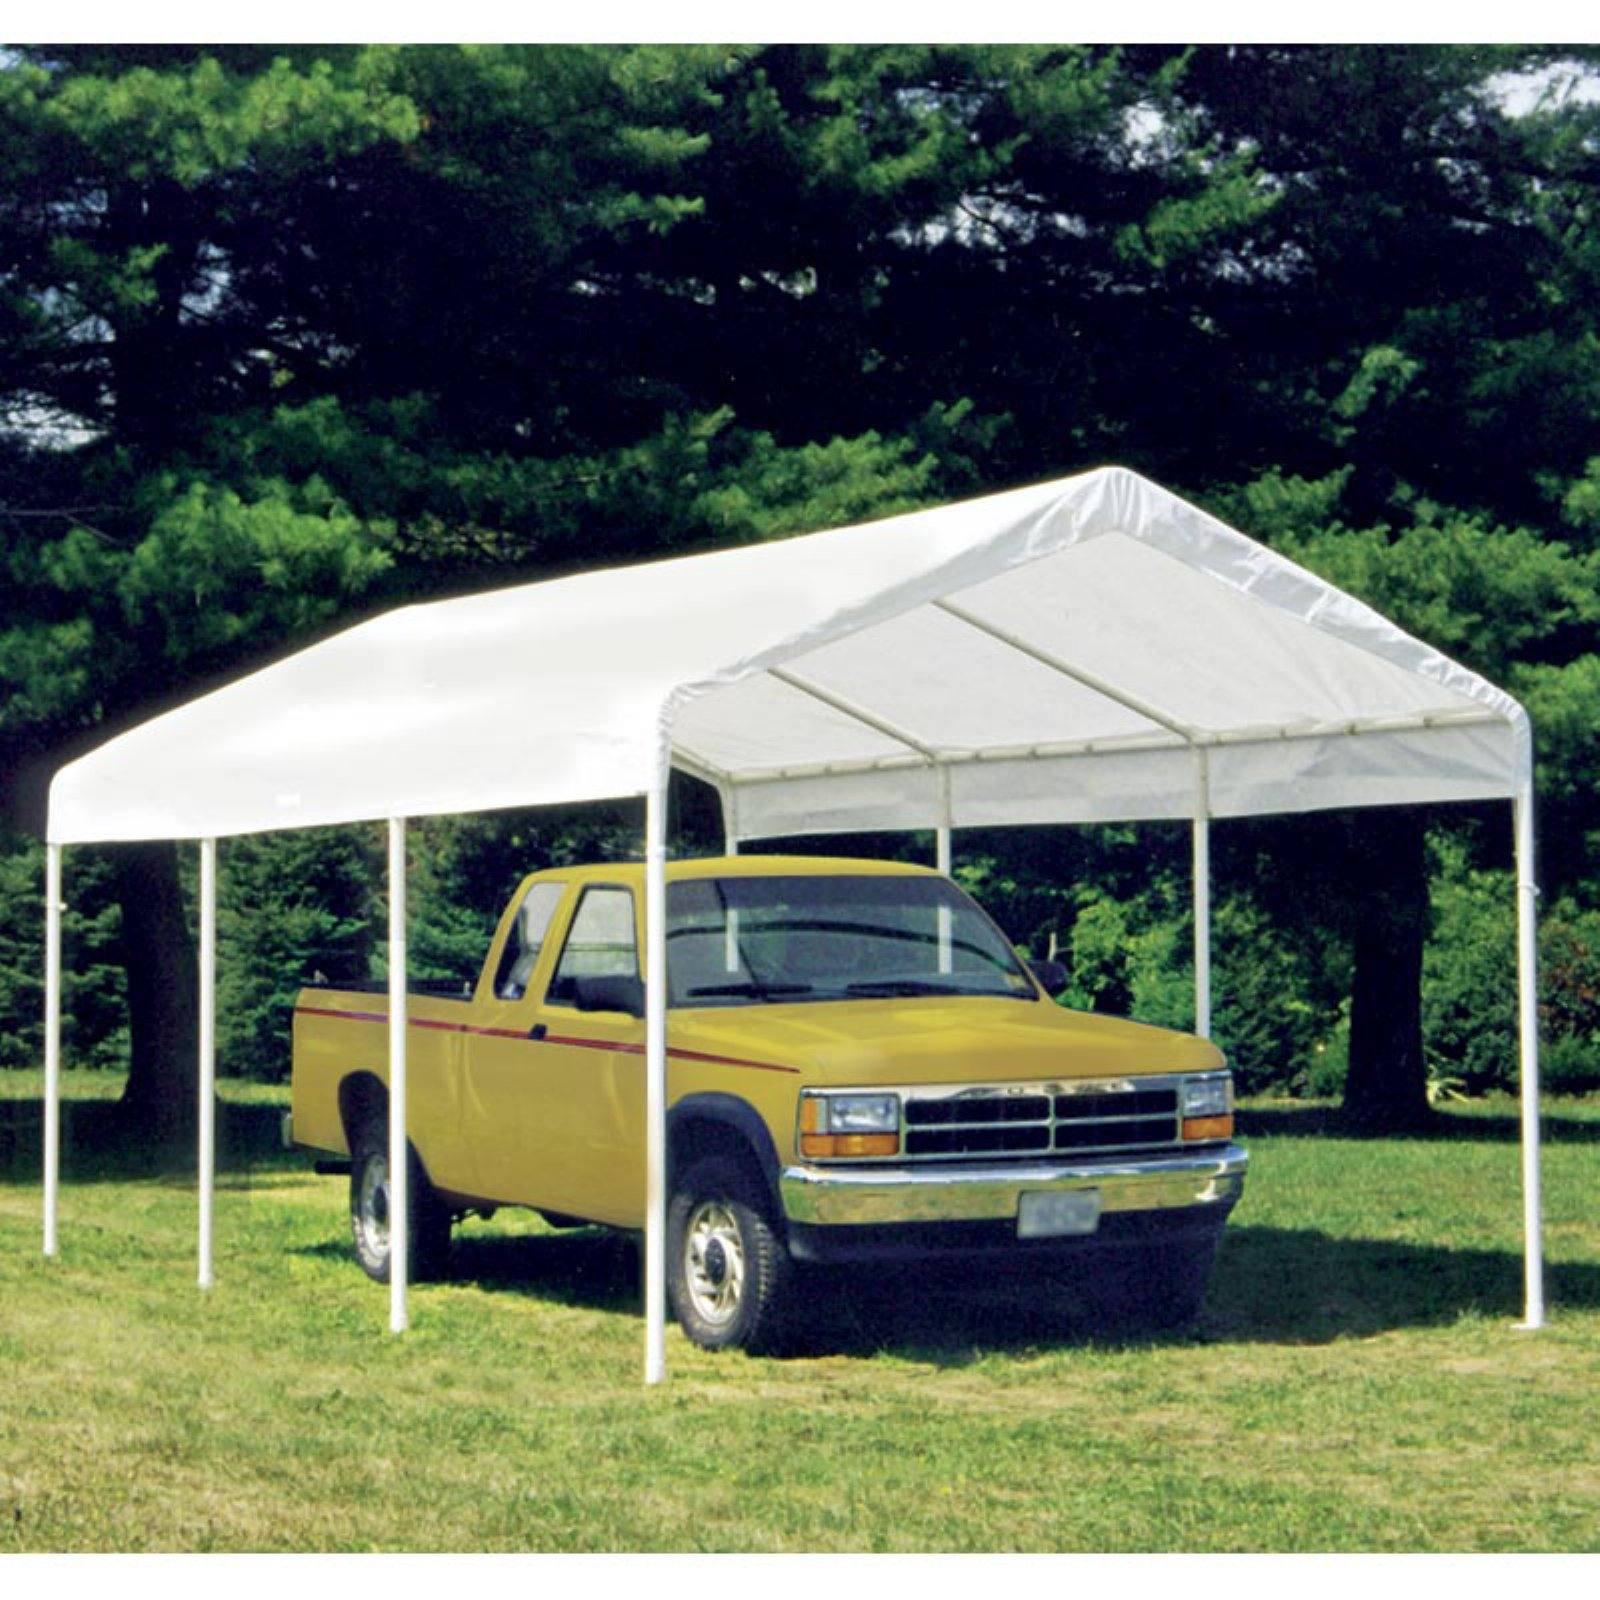 Shelterlogic Max AP 10' x 20' 2-in-1 Canopy with White Cover Enclosure Kit